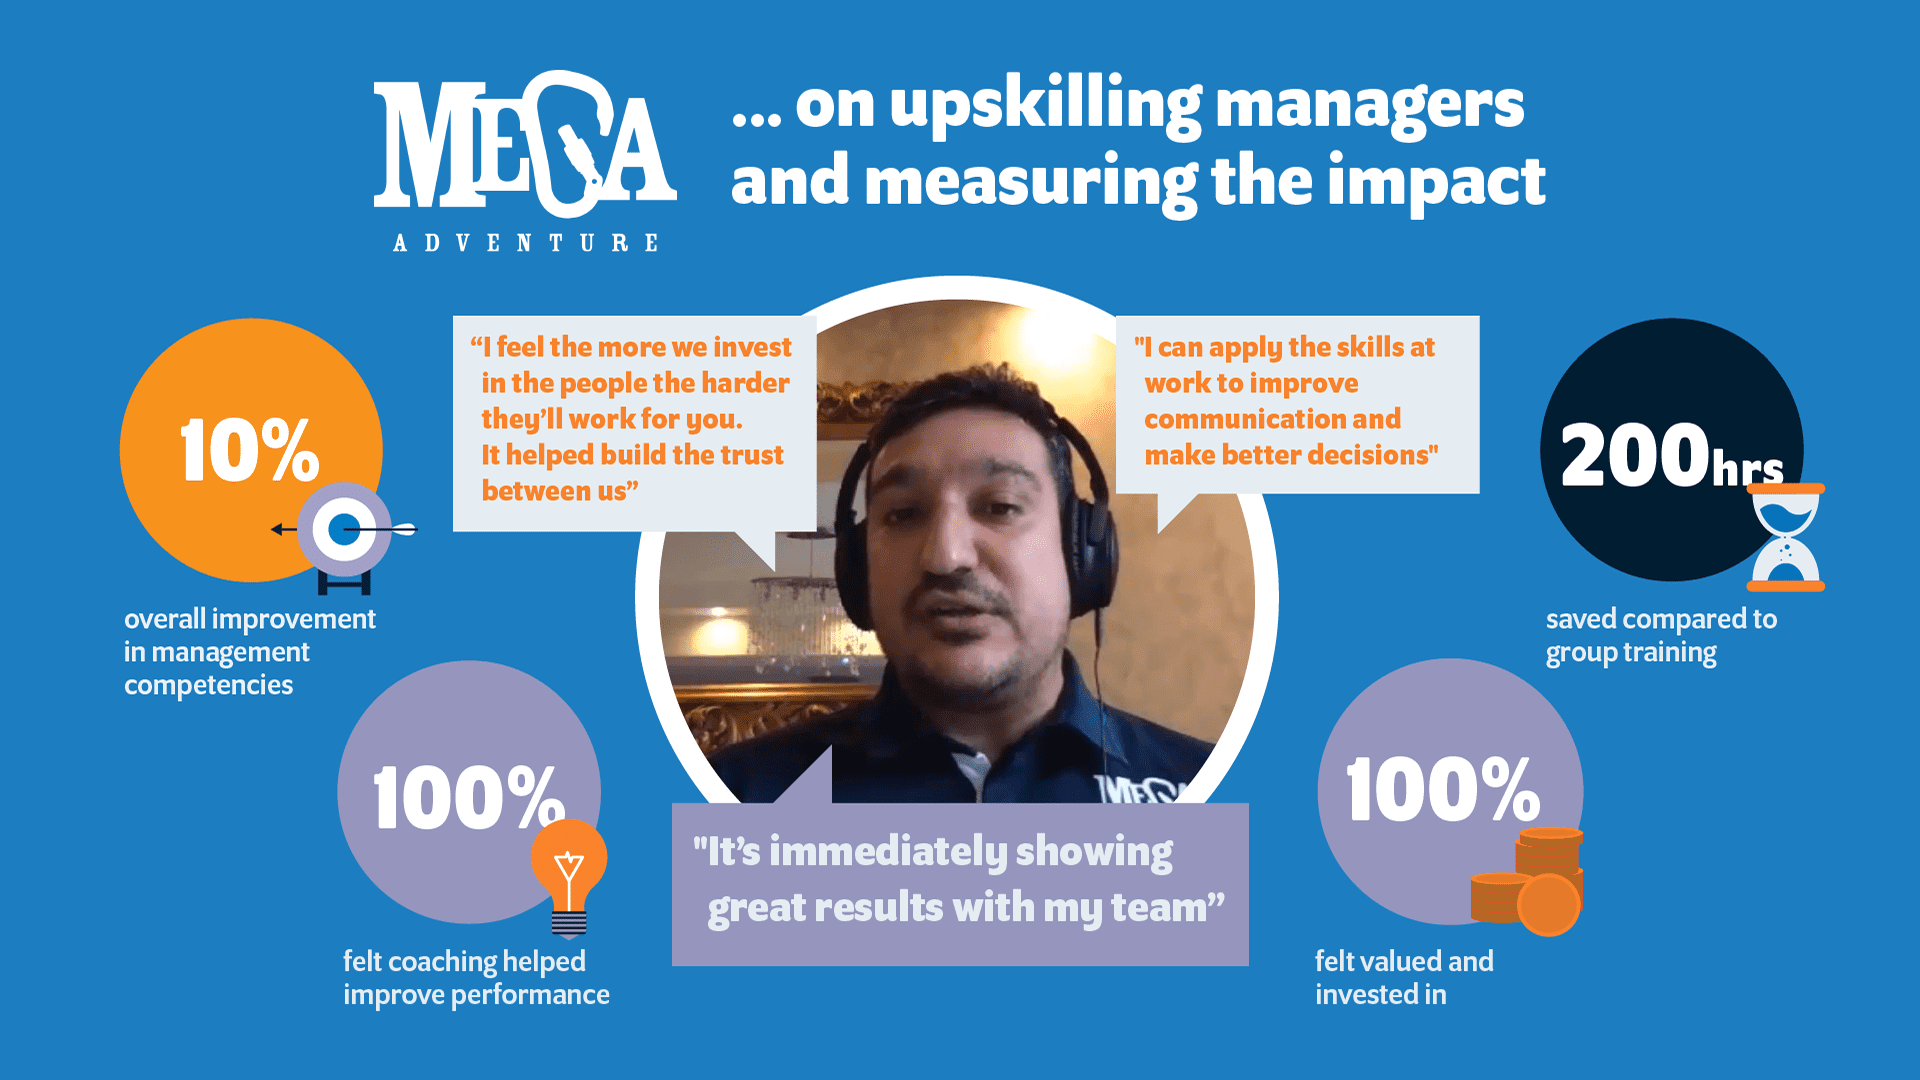 Mega Adventure on upskilling managers and measuring the impact